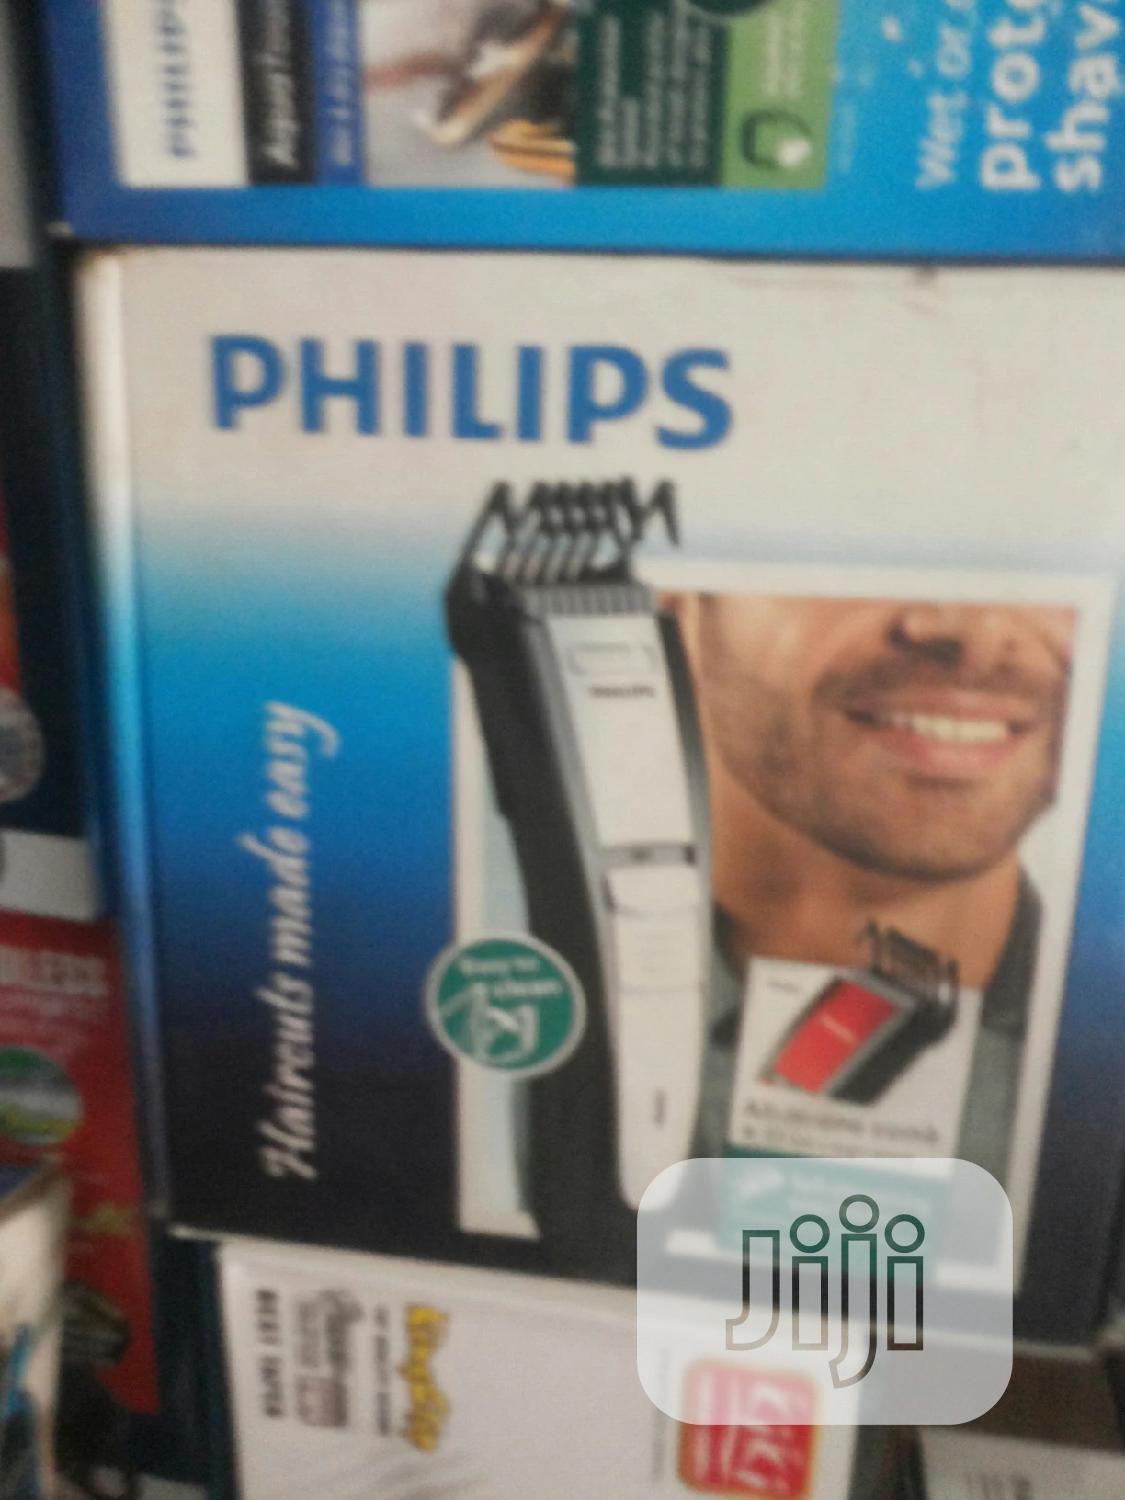 Philips Hair Clippers Quality Delivery Yes